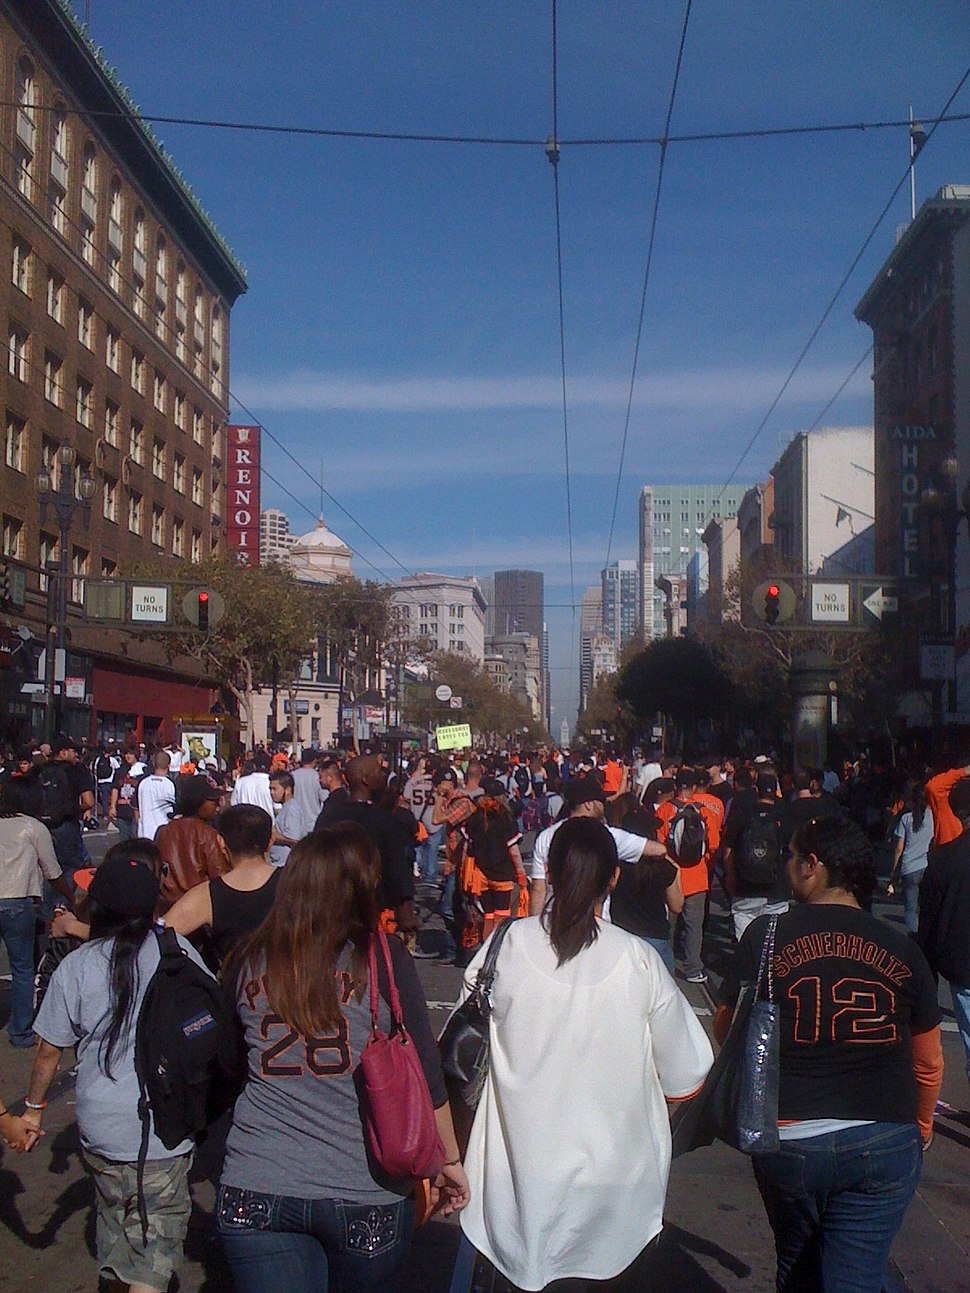 San Francisco's Market Street after the Giants victory parade